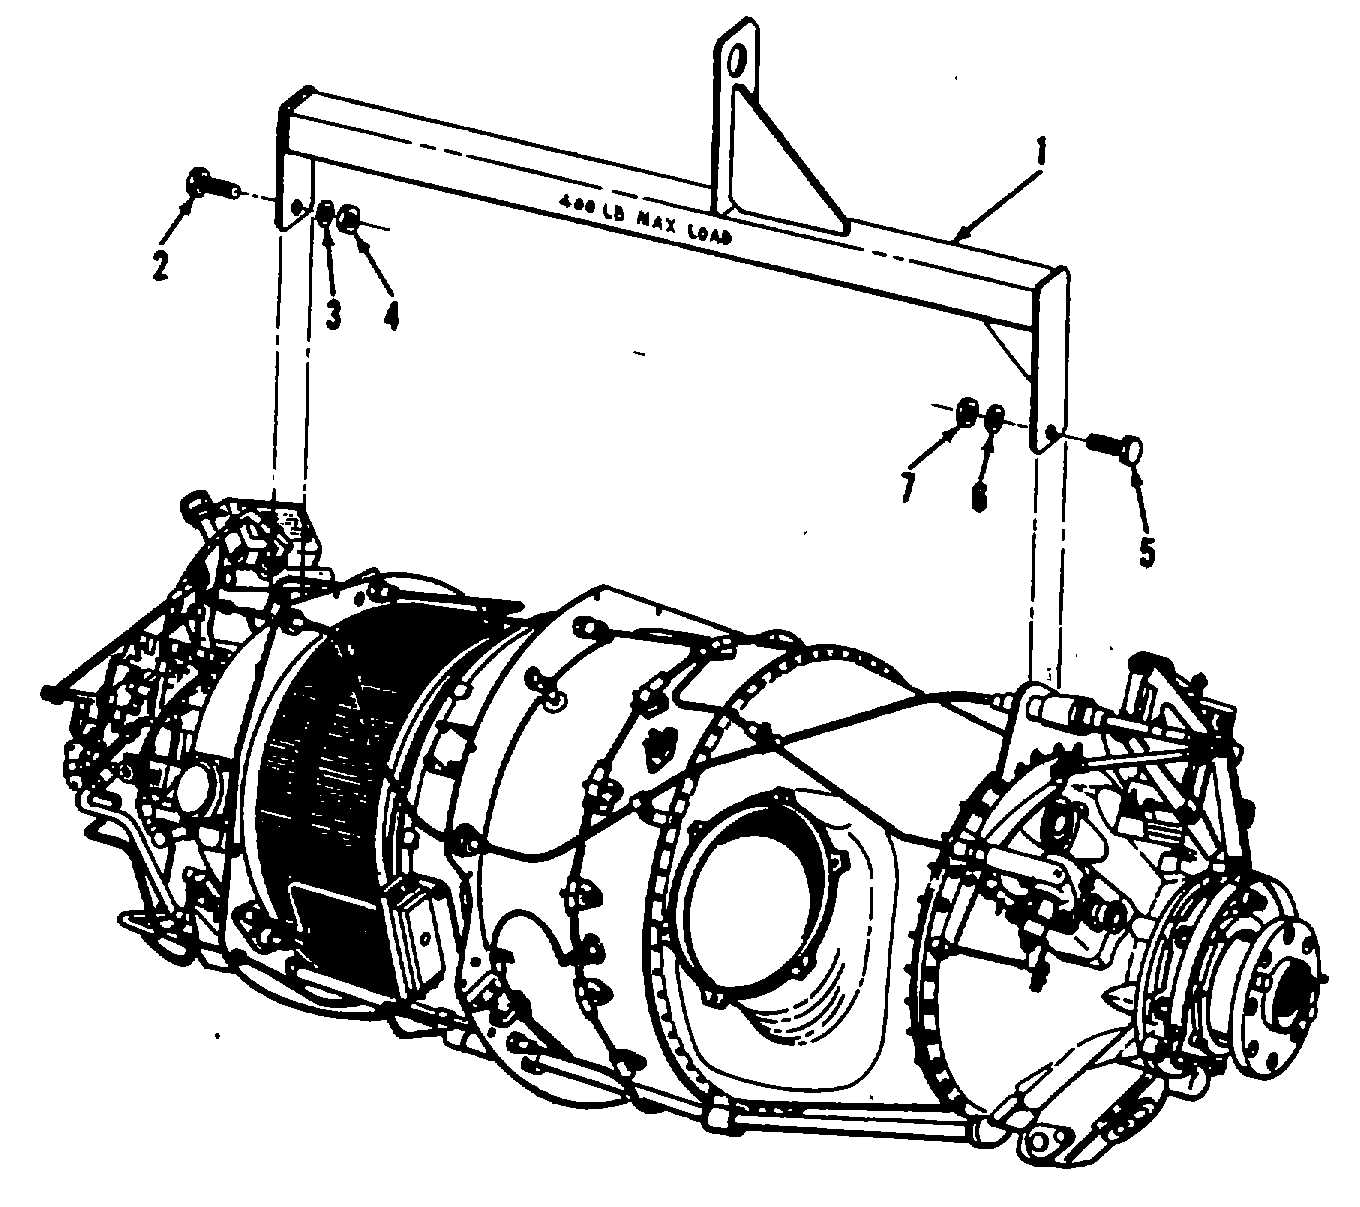 Section Vii T74 Turboprop Engine